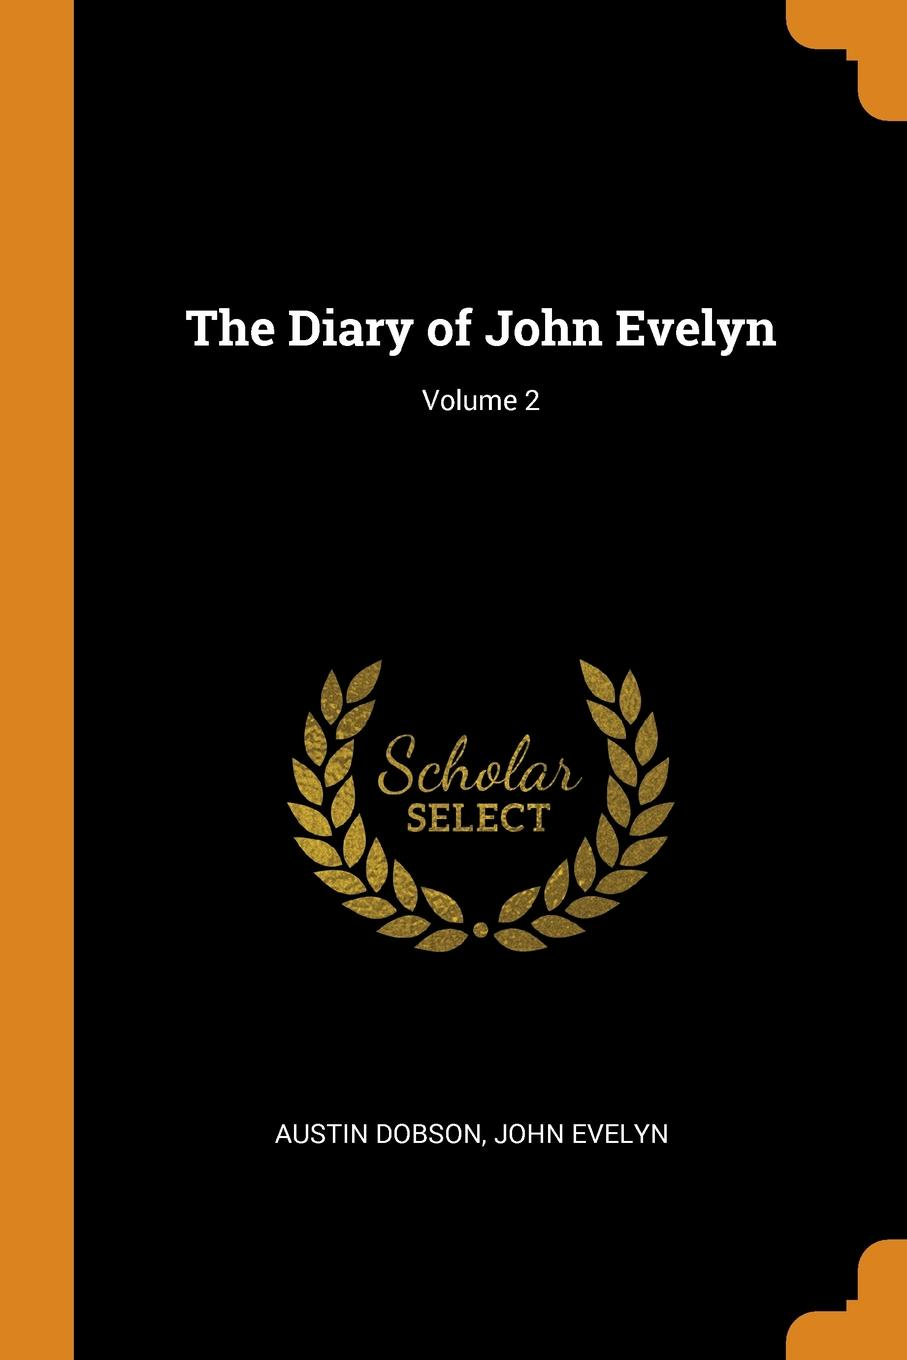 цена Austin Dobson, John Evelyn The Diary of John Evelyn; Volume 2 в интернет-магазинах